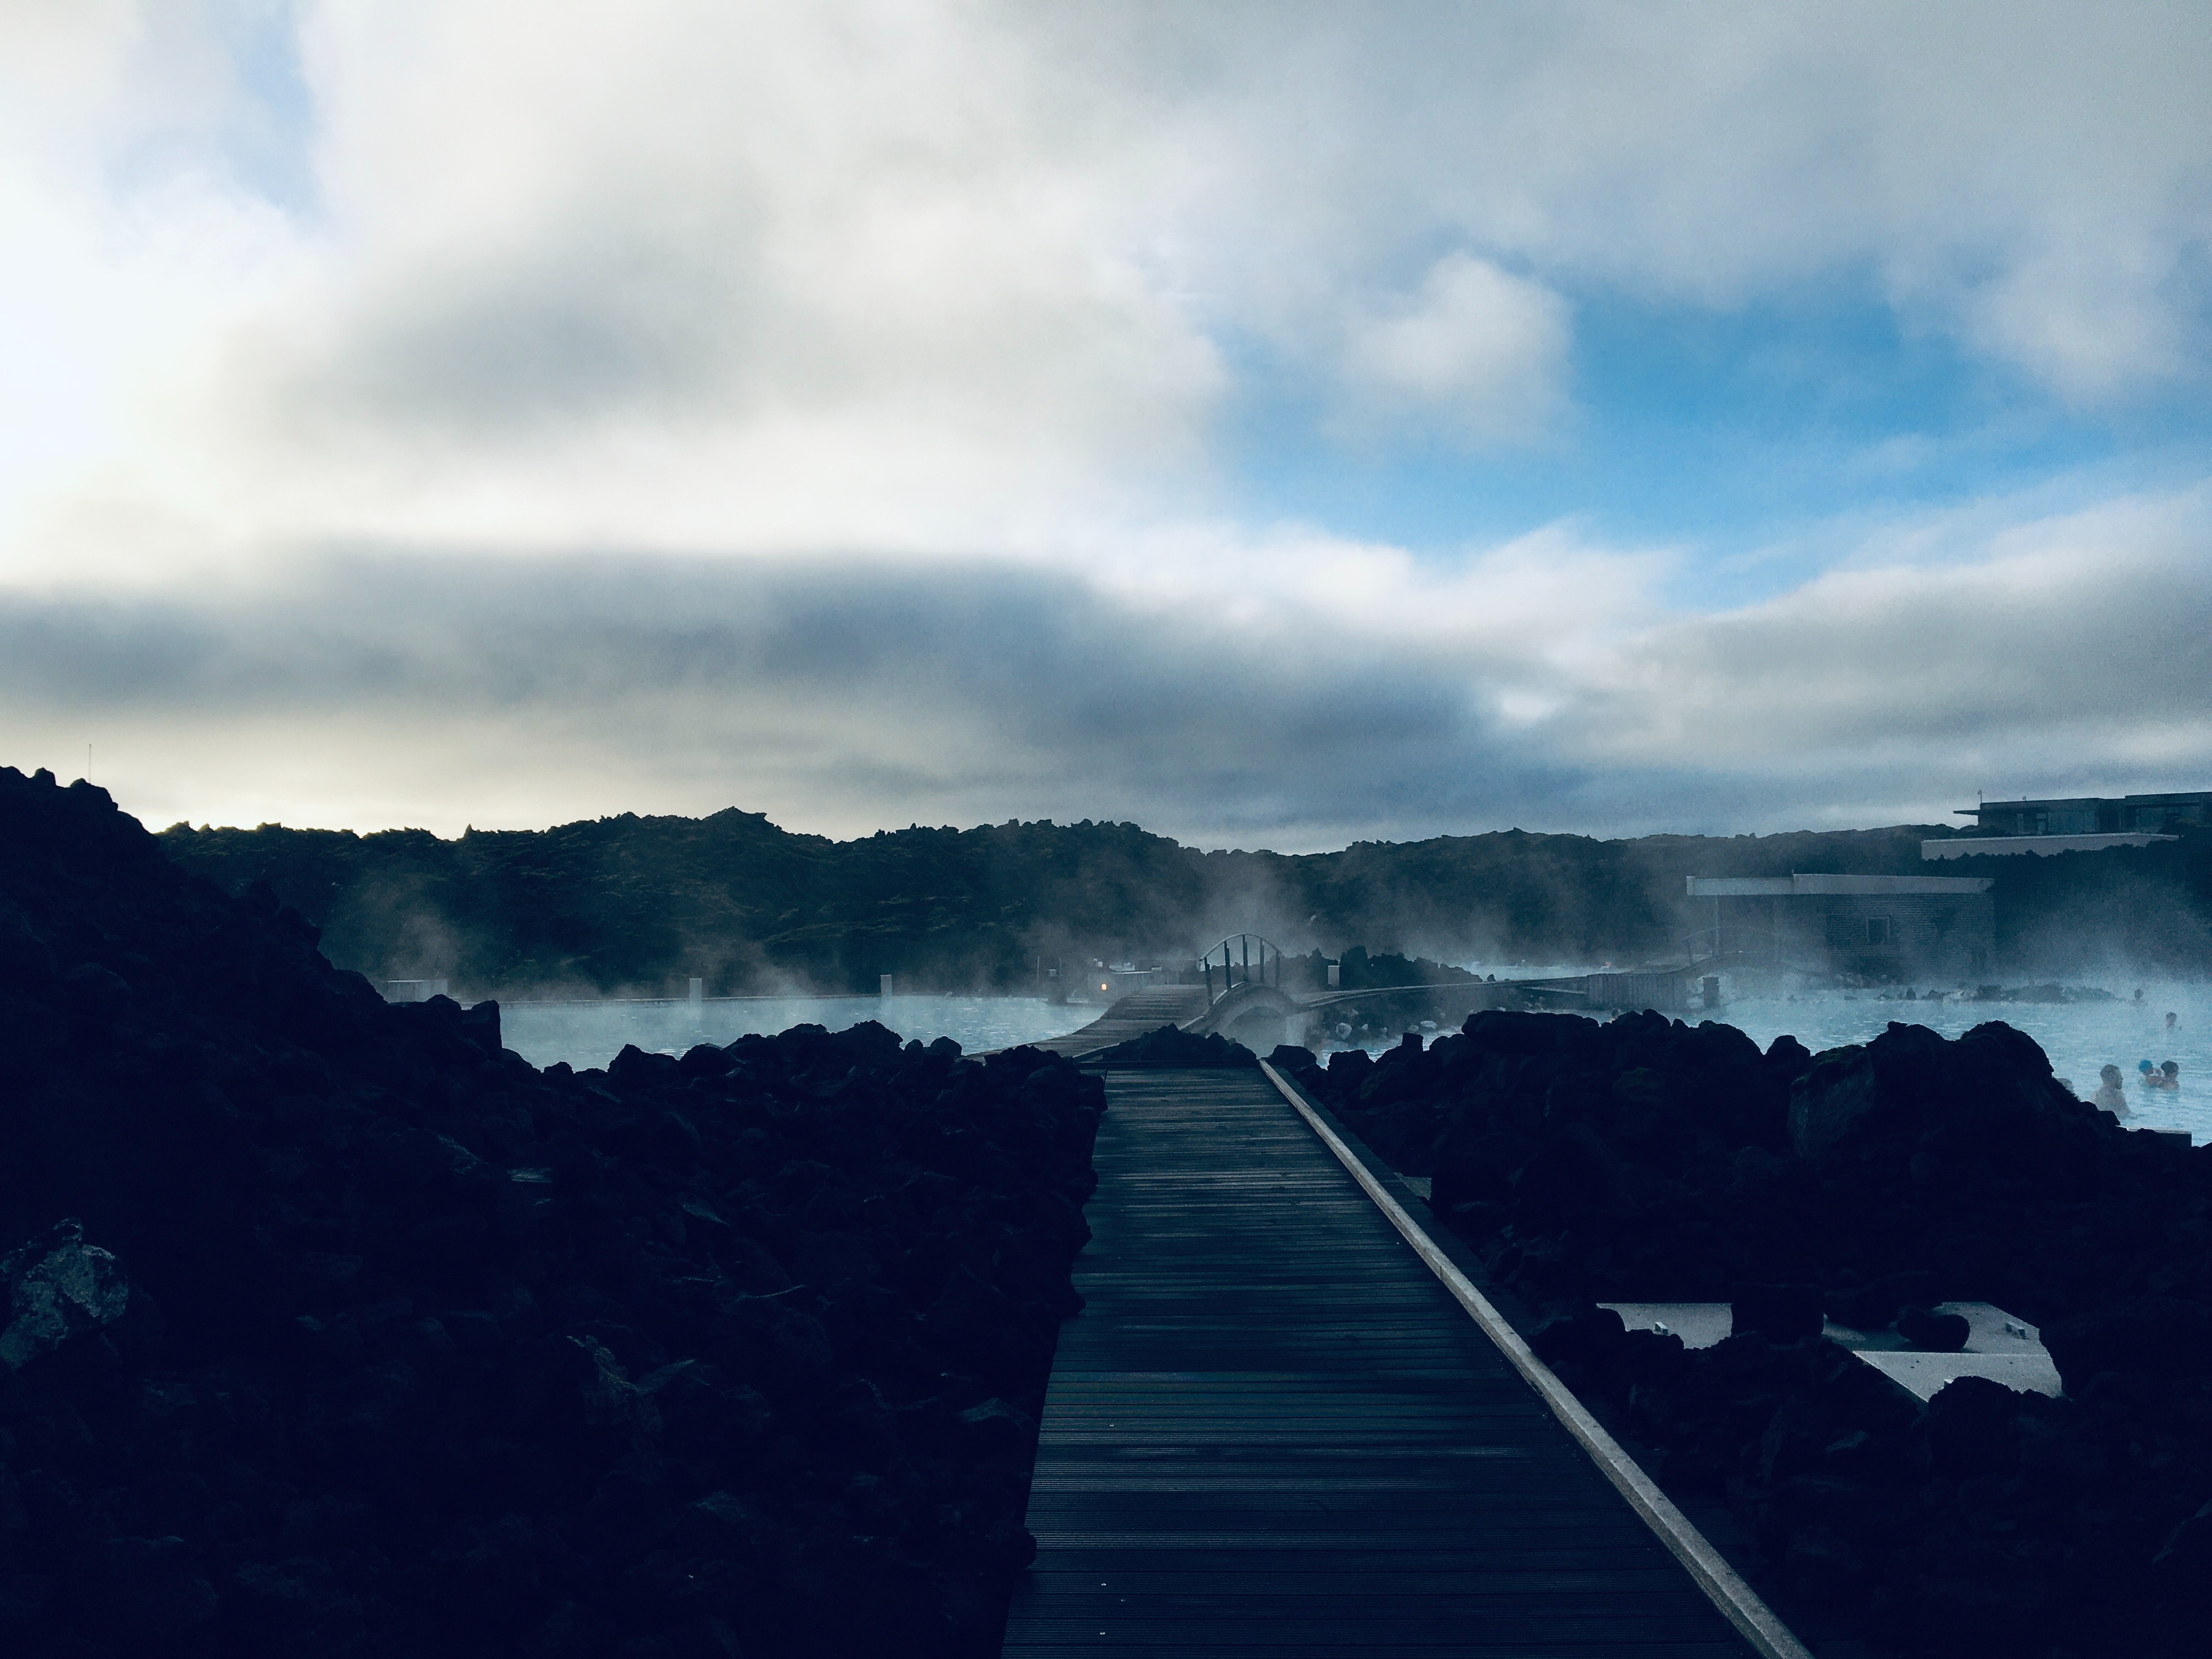 The Blue Lagoon is set among the rocky landscapes of the Reykjanes Peninsula